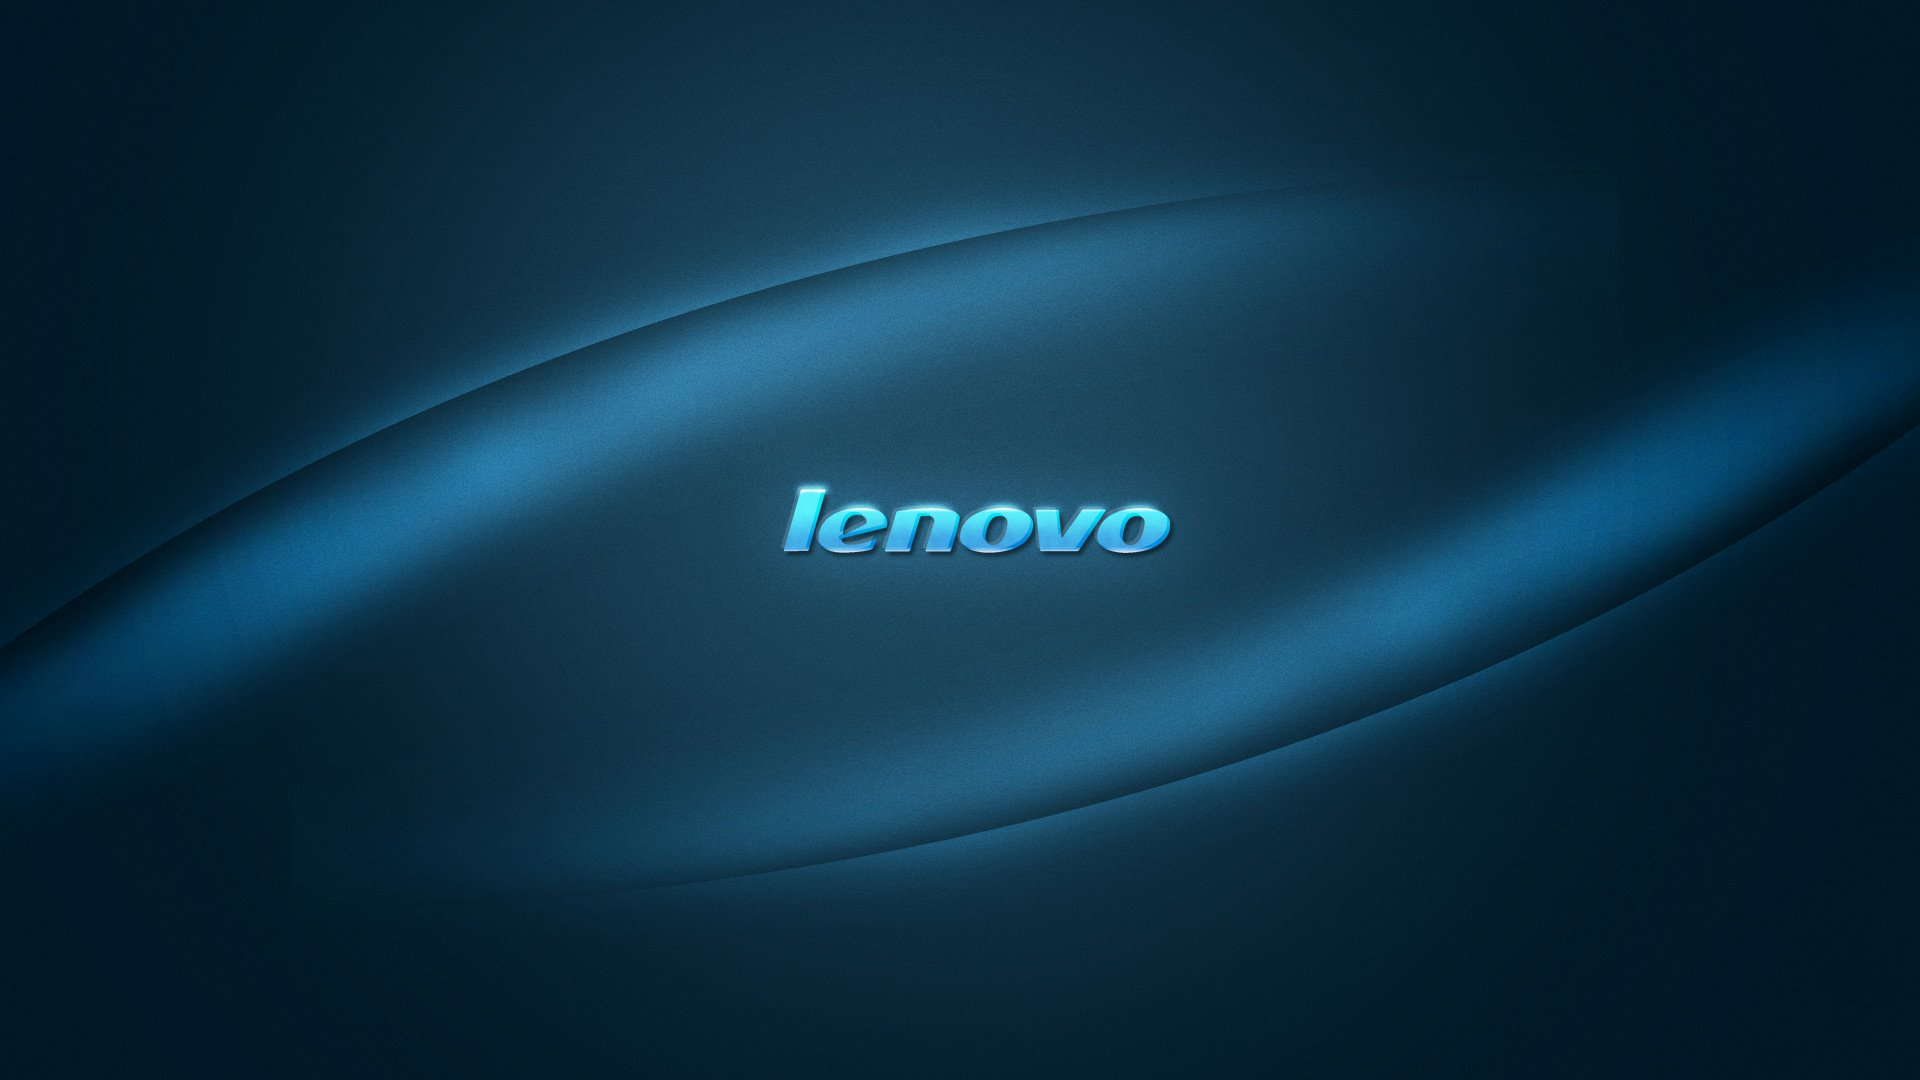 27 Handpicked Lenovo Wallpapers Backgrounds In HD For Free Download